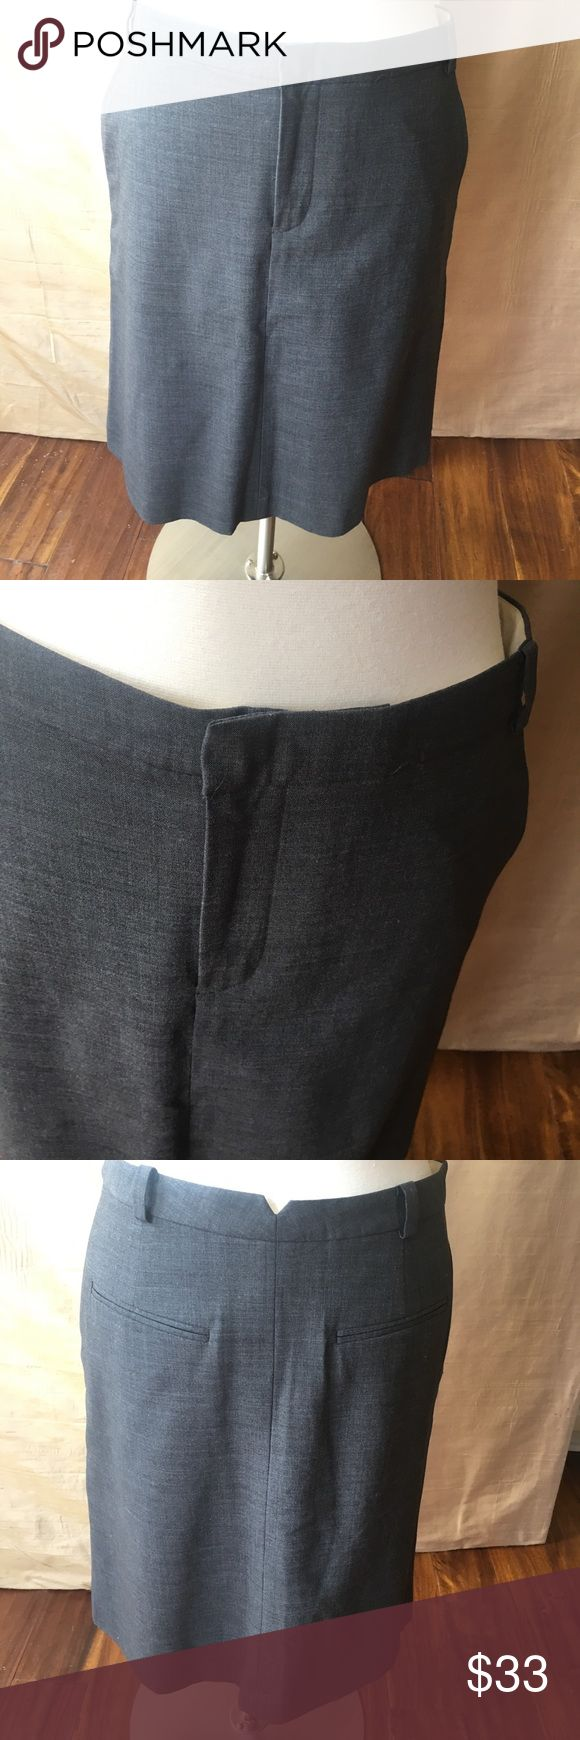 """Banana Republic Grey Wool Skirt - Size 10 Grey wool stretch Banana Republic pencil skirt in perfect condition. Worn twice. Like new. Side pockets and loops for a belt. Lovely work skirt that would look great for a cocktail as well.   Measurements:  Waist 16l Hips 20l Length 23""""  This is their Stretch line so there is some stretch in the fabric. Banana Republic Skirts"""